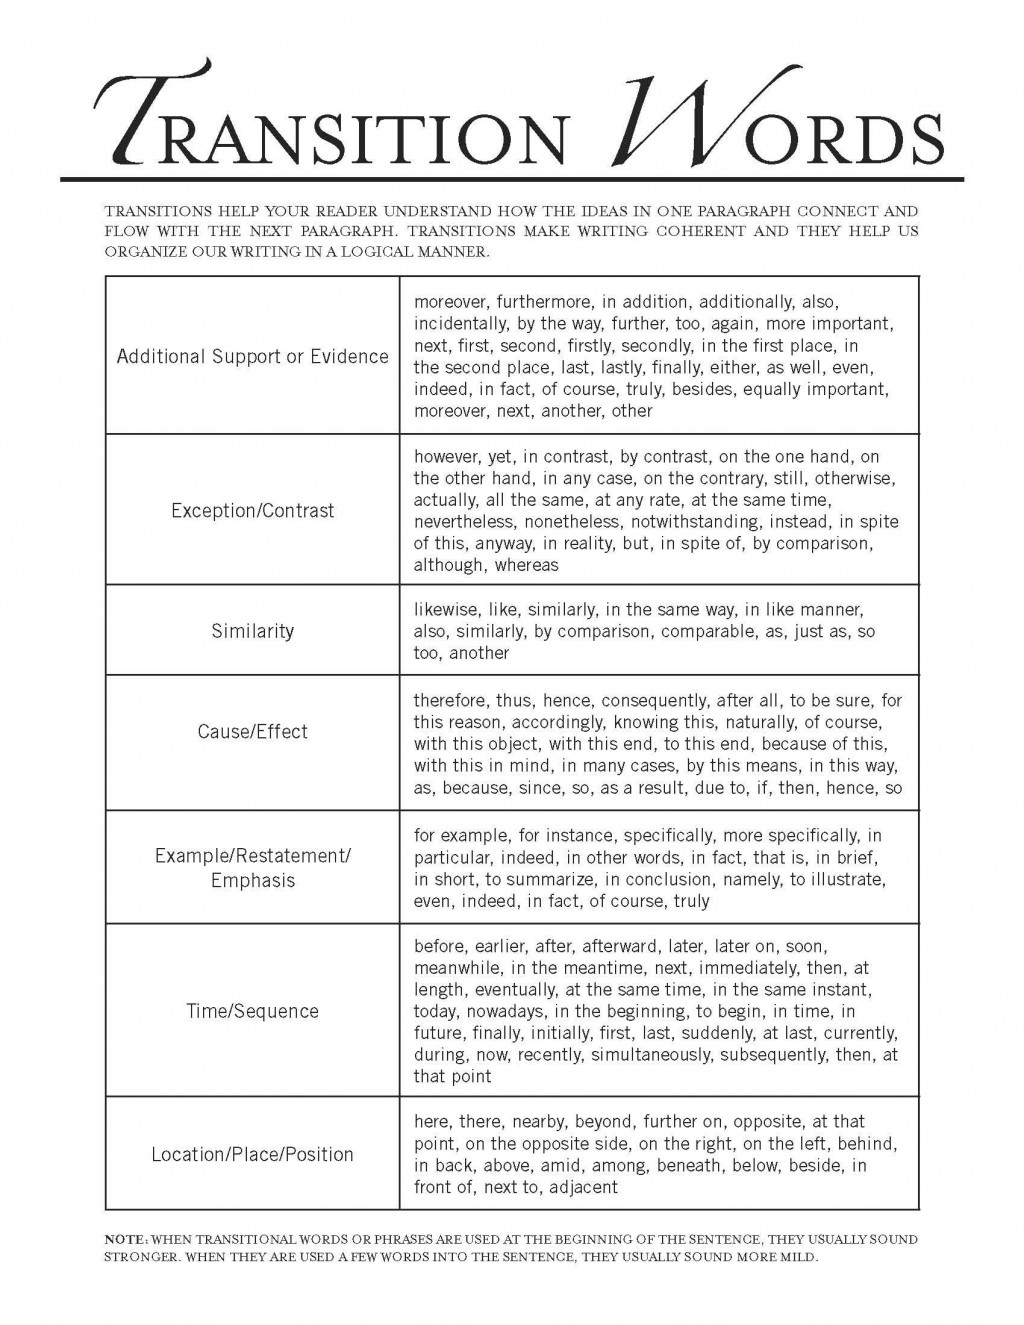 003 Essay Transitions Archaicawful Transition Sentences Between Paragraphs Words List Large